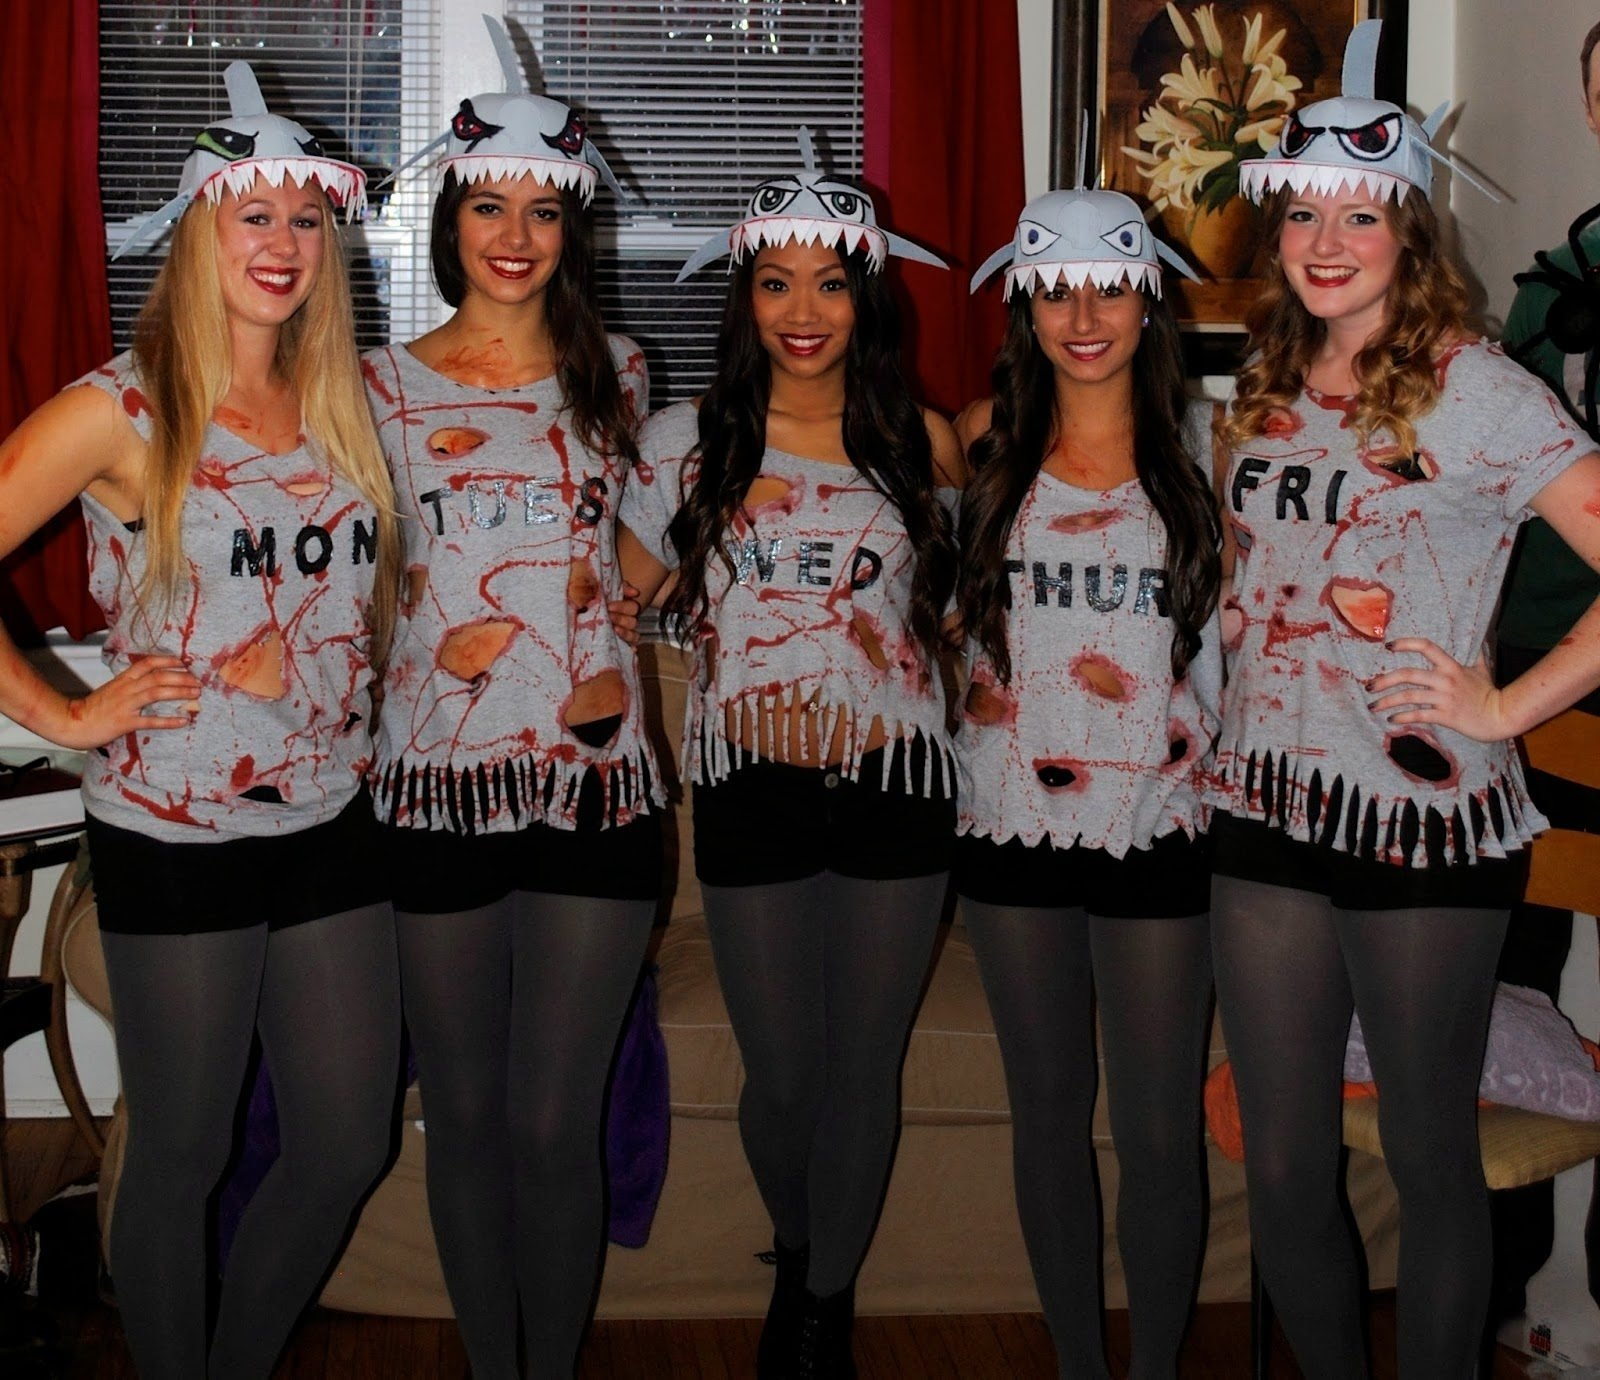 10 Trendy Group Of 4 Halloween Costume Ideas this list of group halloween costume ideas will blow your mind 21 2020